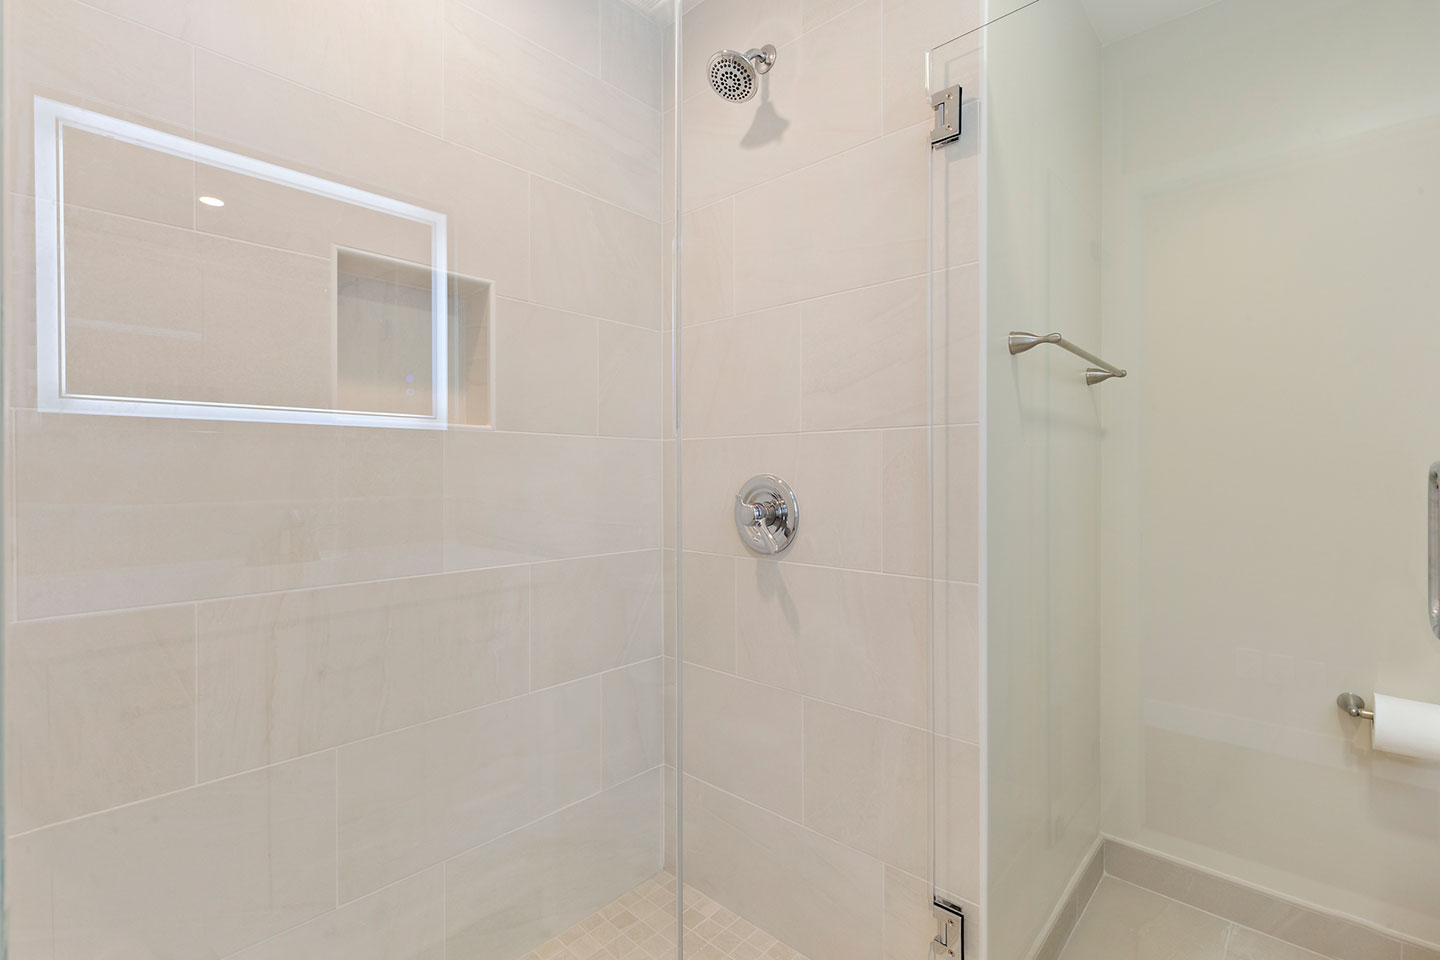 tiled shower area with glass enclosure